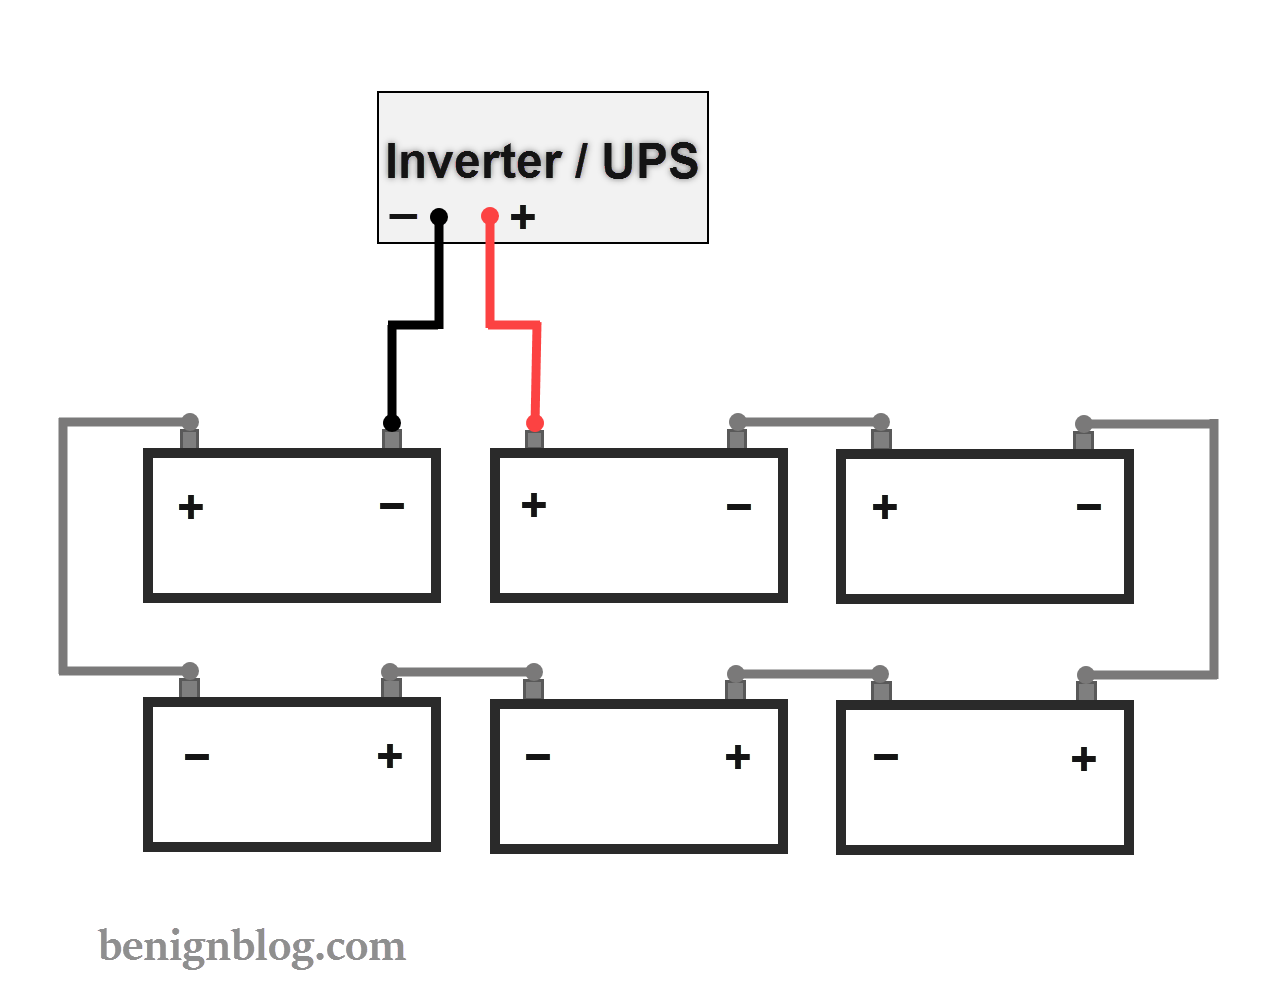 medium resolution of how to connect batteries in series with power inverter or ups 6 volt battery series wiring diagram battery series wiring diagram